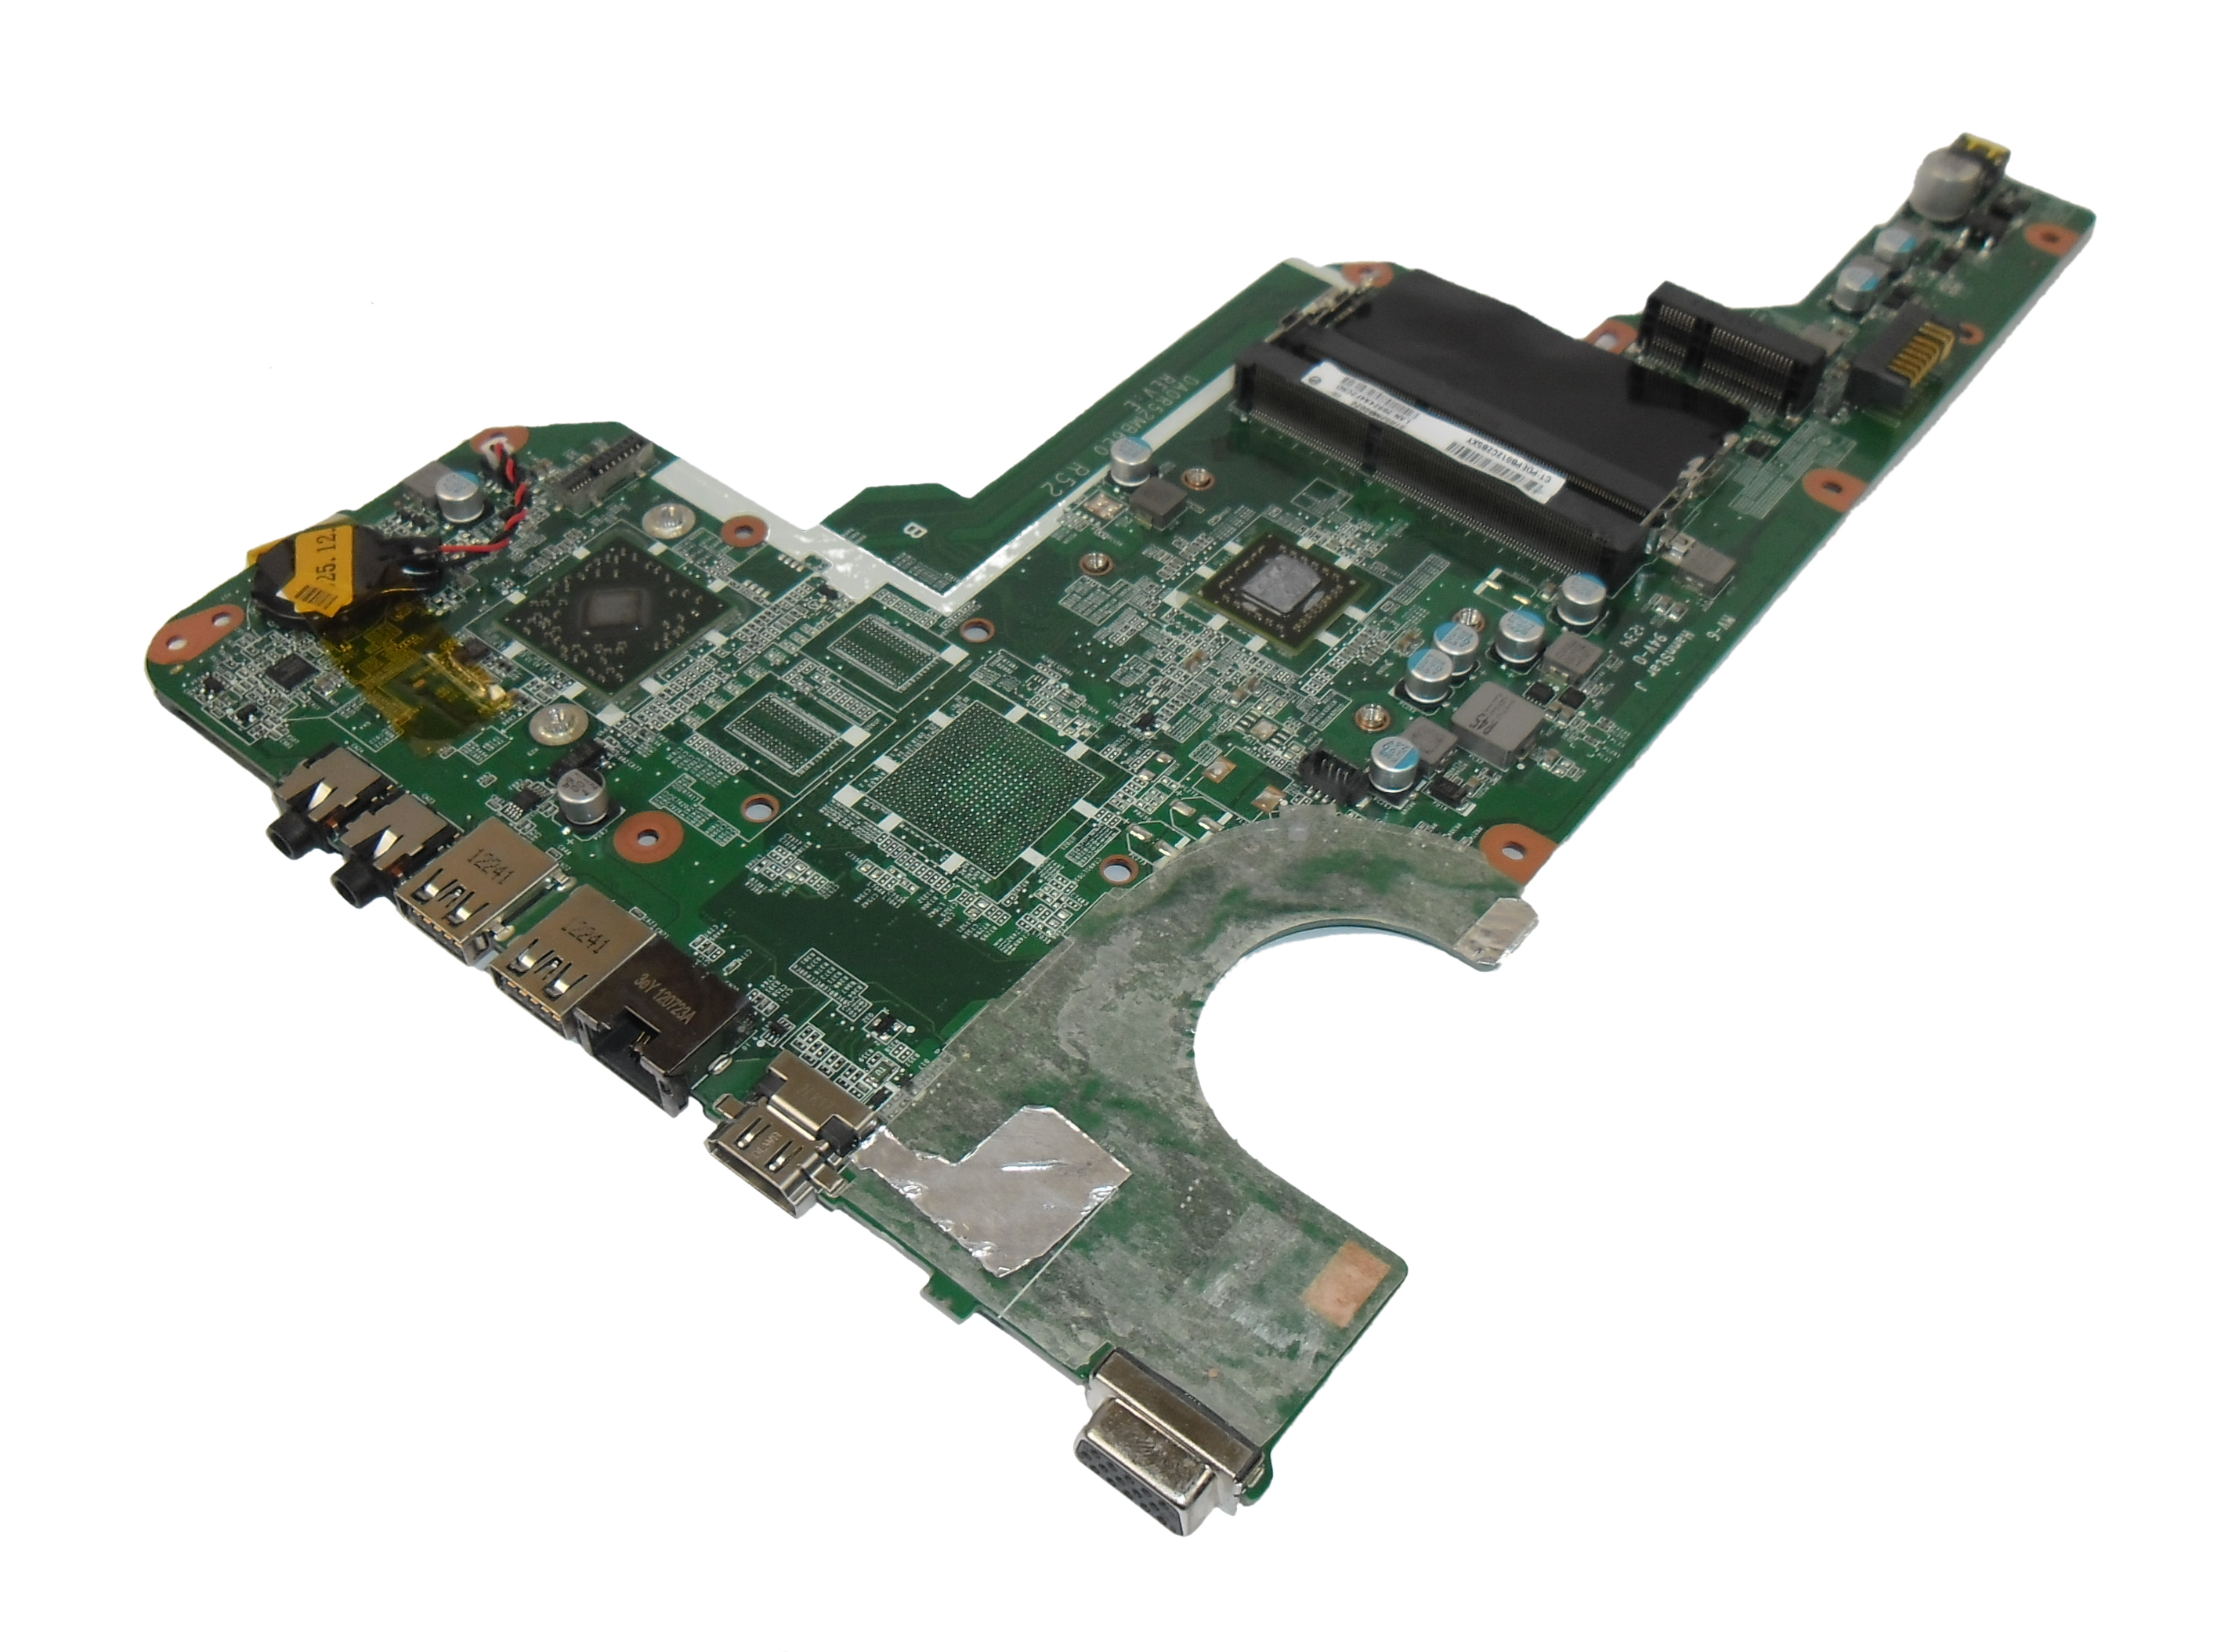 HP 697230-501 g6-2240sa Laptop Motherboard with AMD E2-1800 CPU - 31R52MB0020